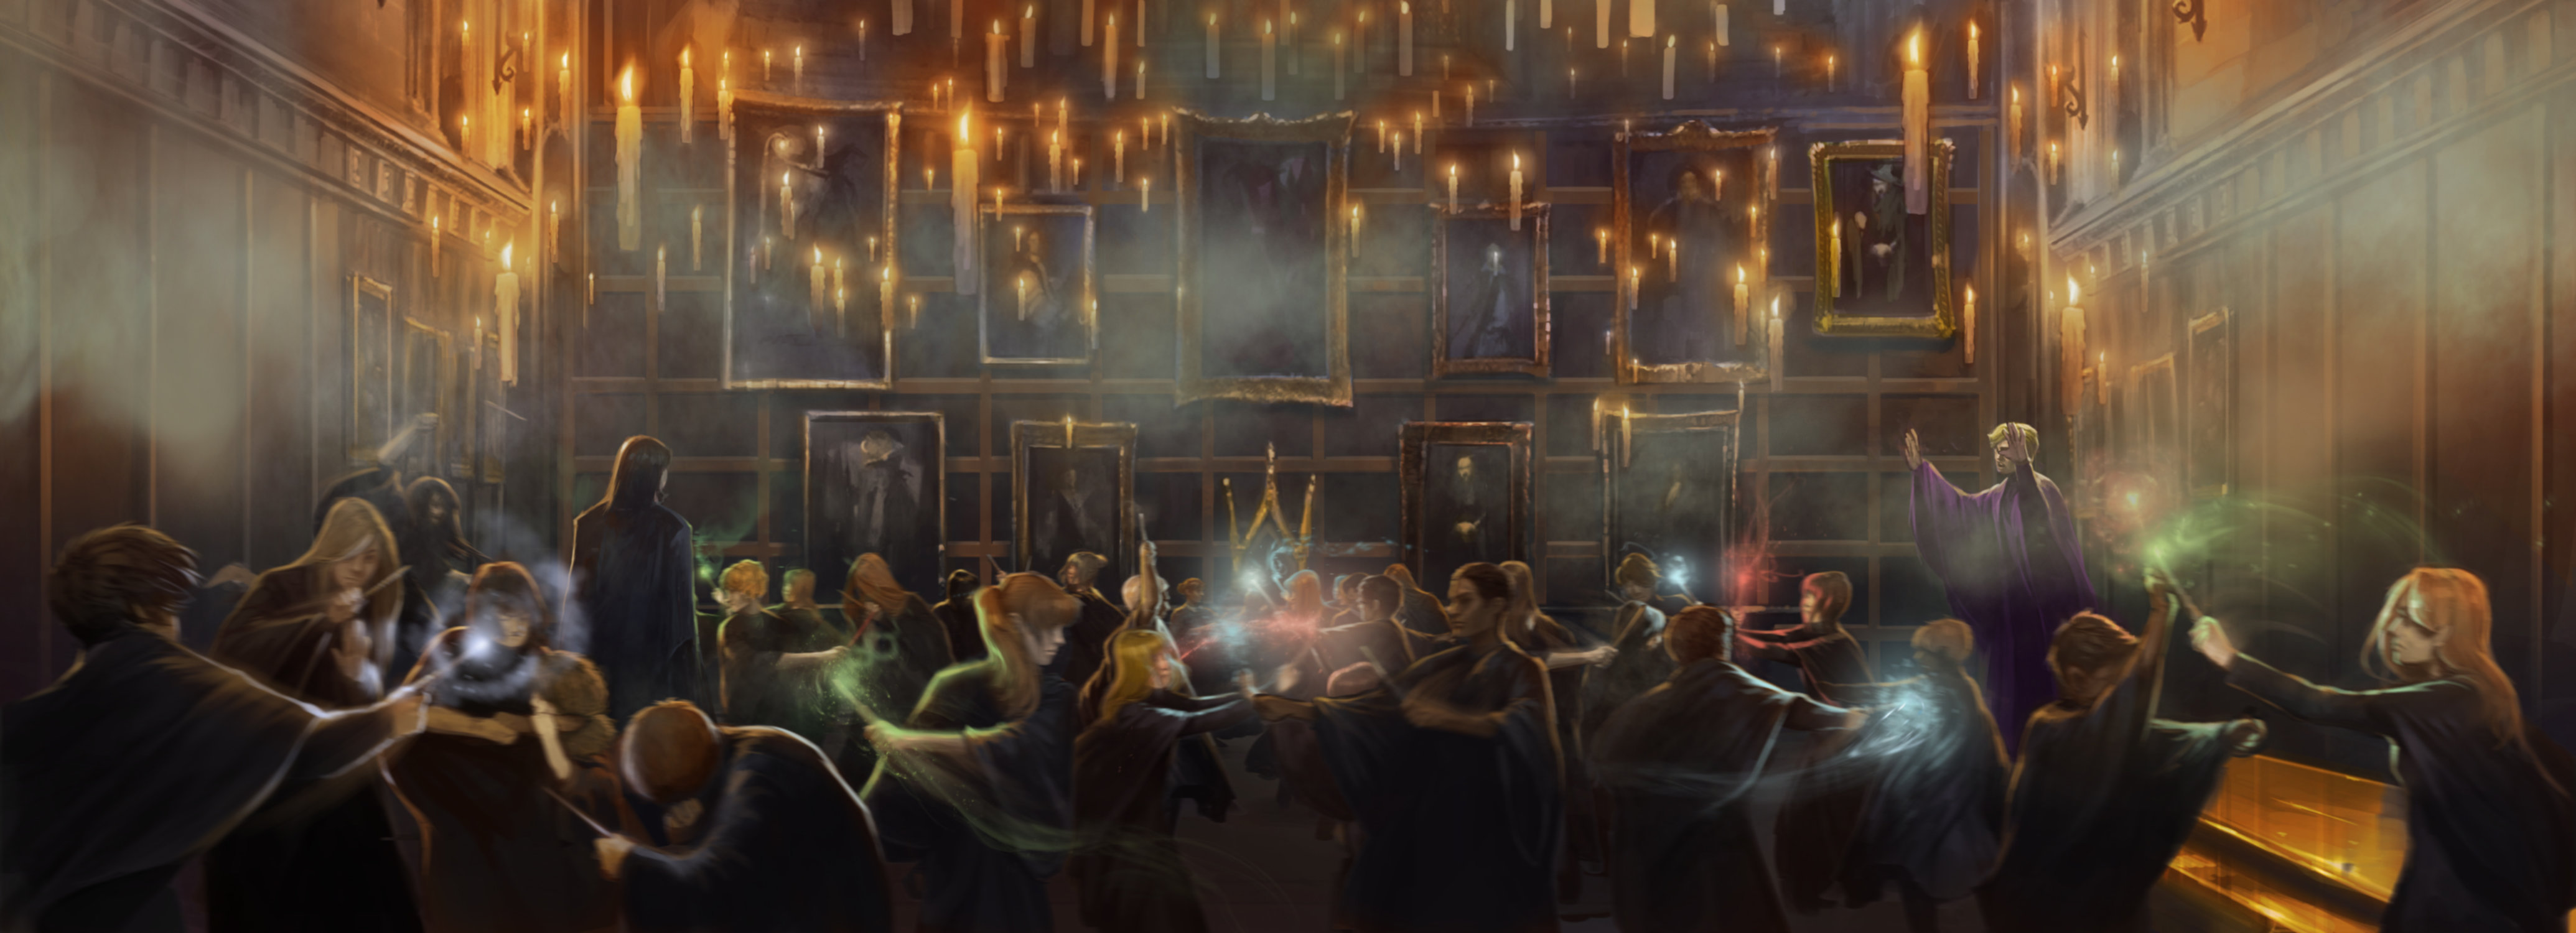 The Great Hall during Duelling Club